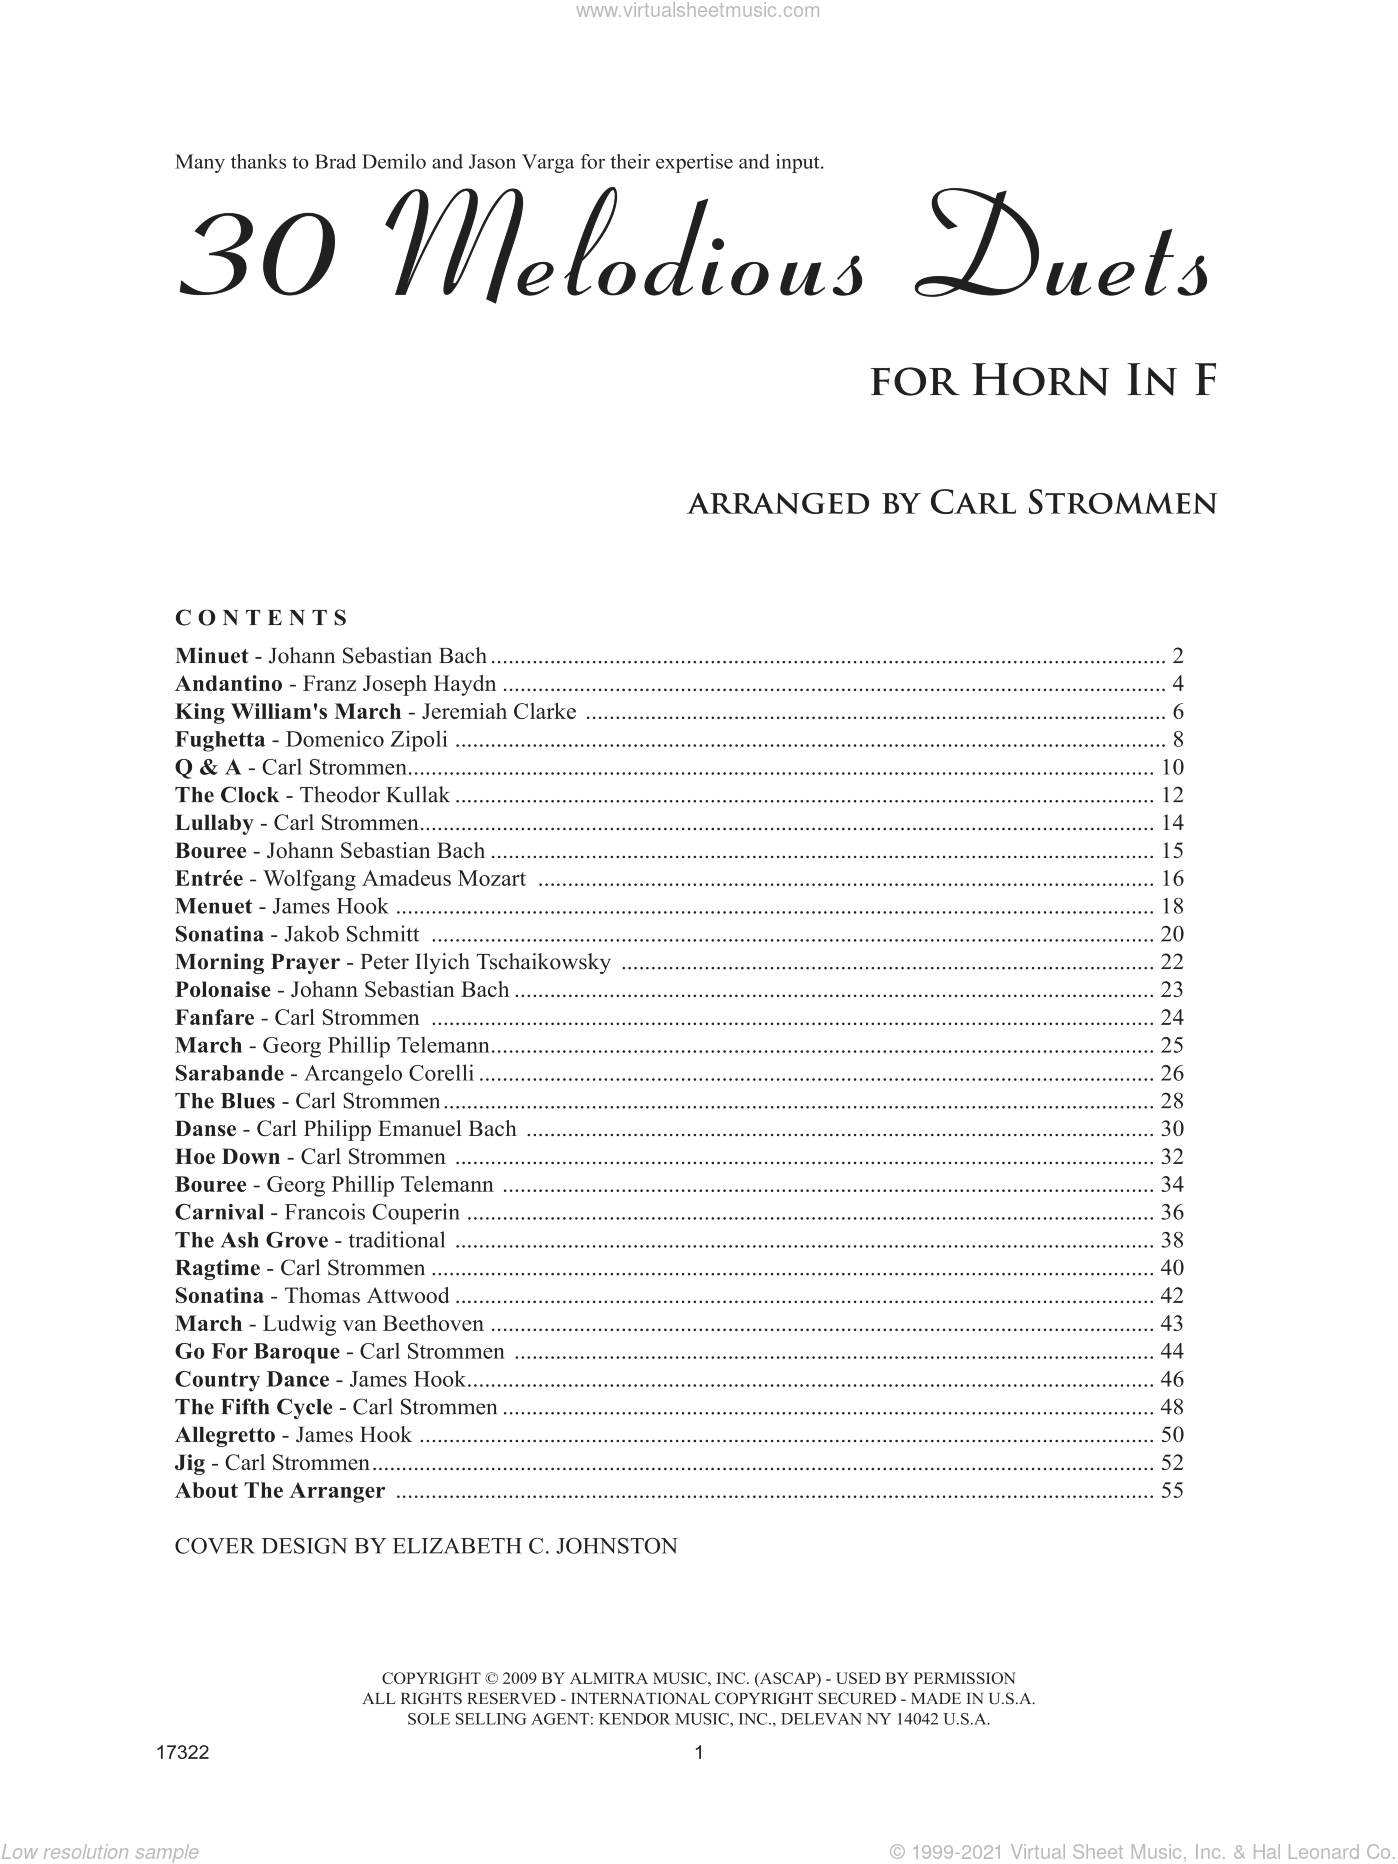 30 Melodious Duets sheet music for two horns by Carl Strommen